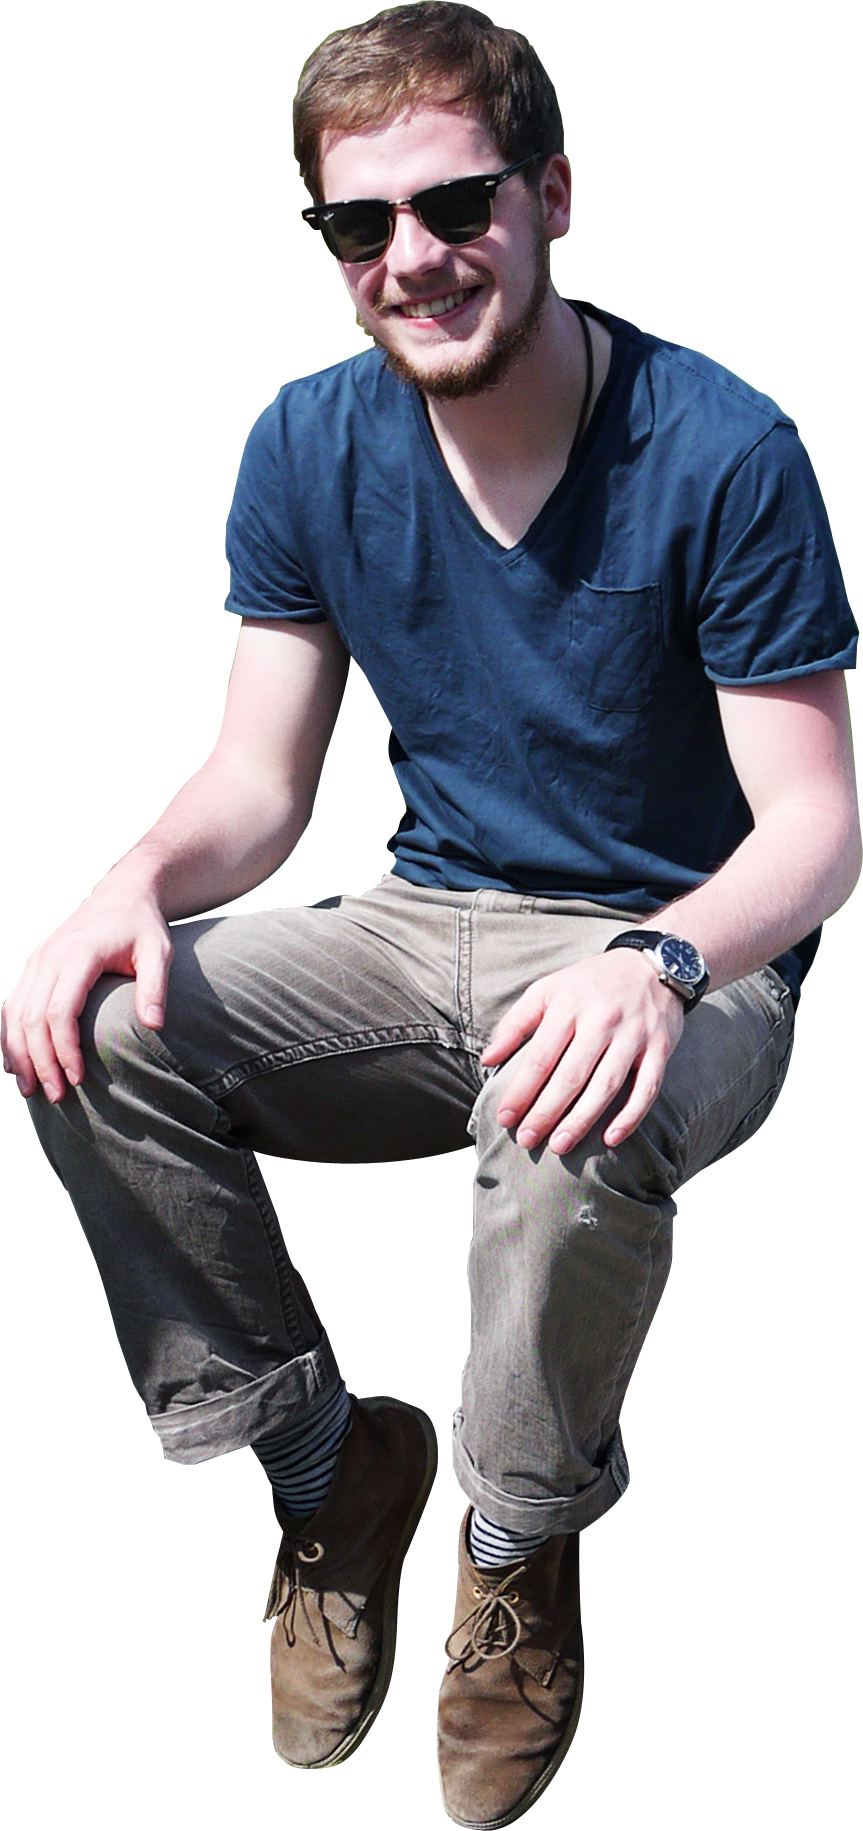 people png student sitting png transparent student sitting images #11771